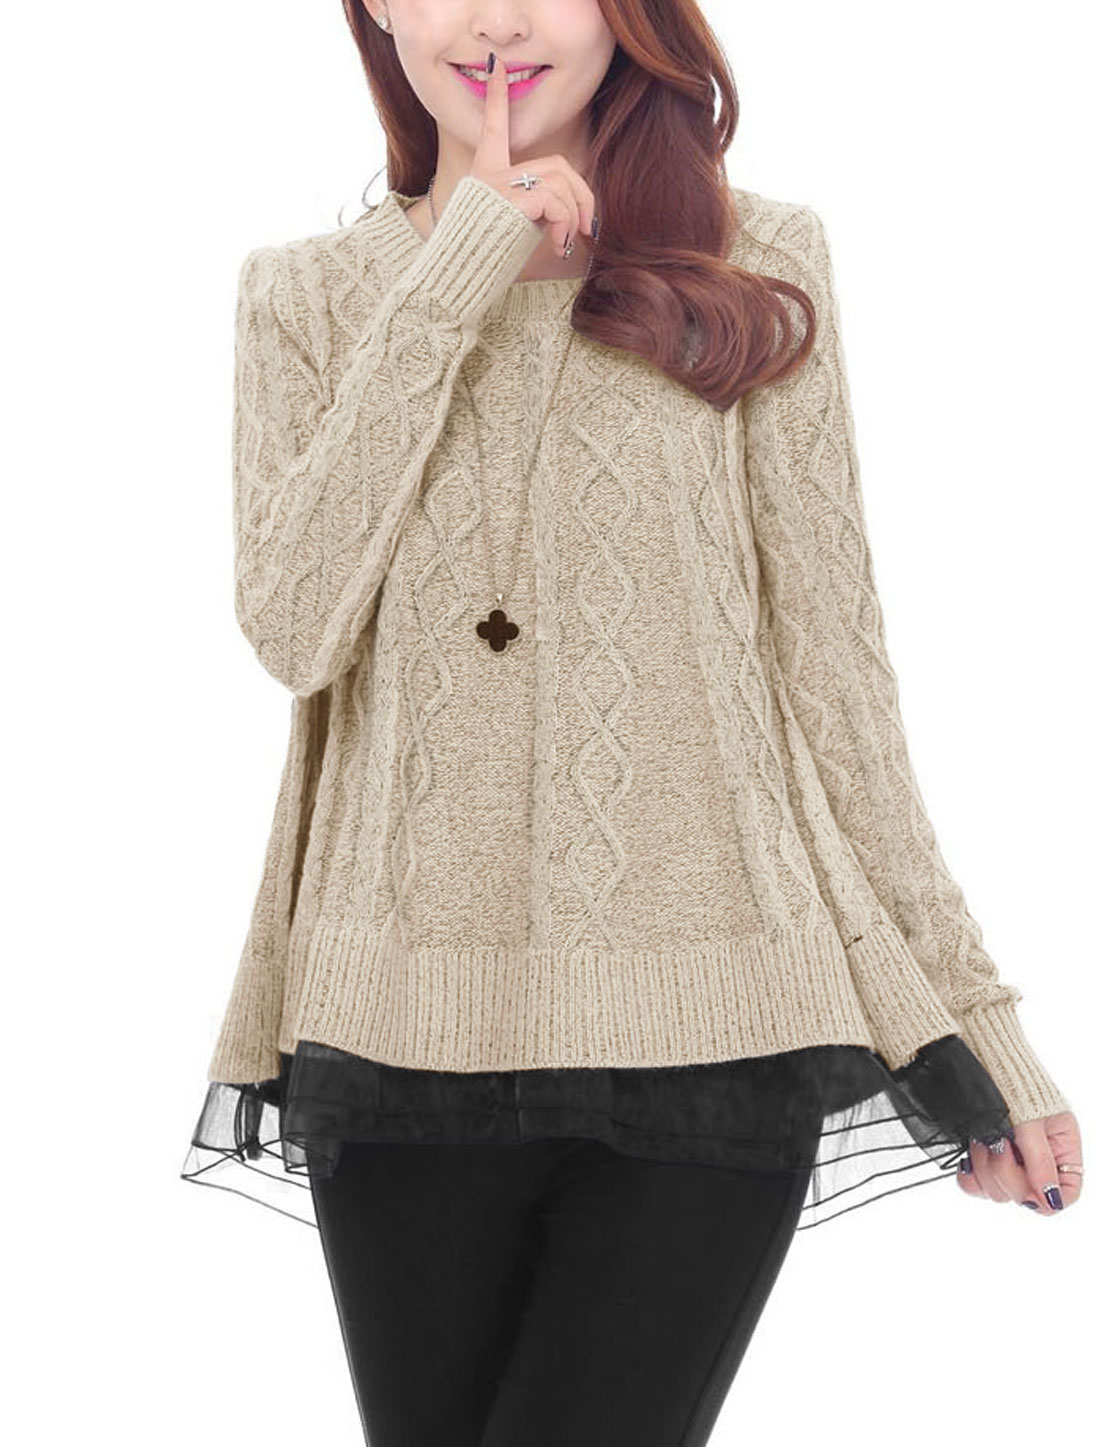 Ladies Round Neck Long Sleeve Tiered Leisure Knit Sweater Beige XS